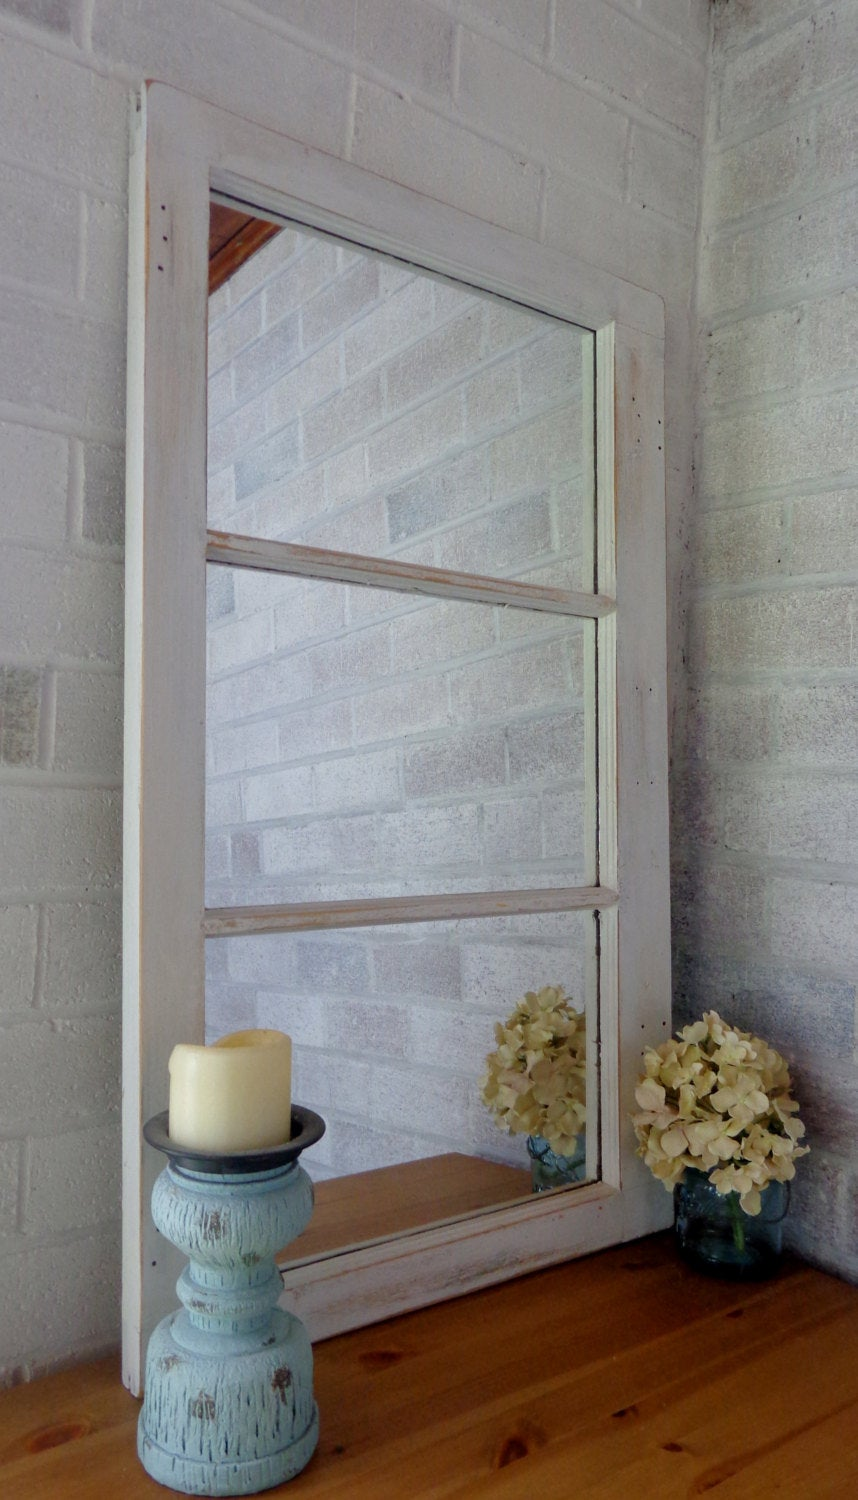 Mirror Wall Decor, Reclaimed Wood Window Mirror – 3 Pane Frame – Decorative Mirror – Vintage Wall Mirror - Renewed Decor & Storage